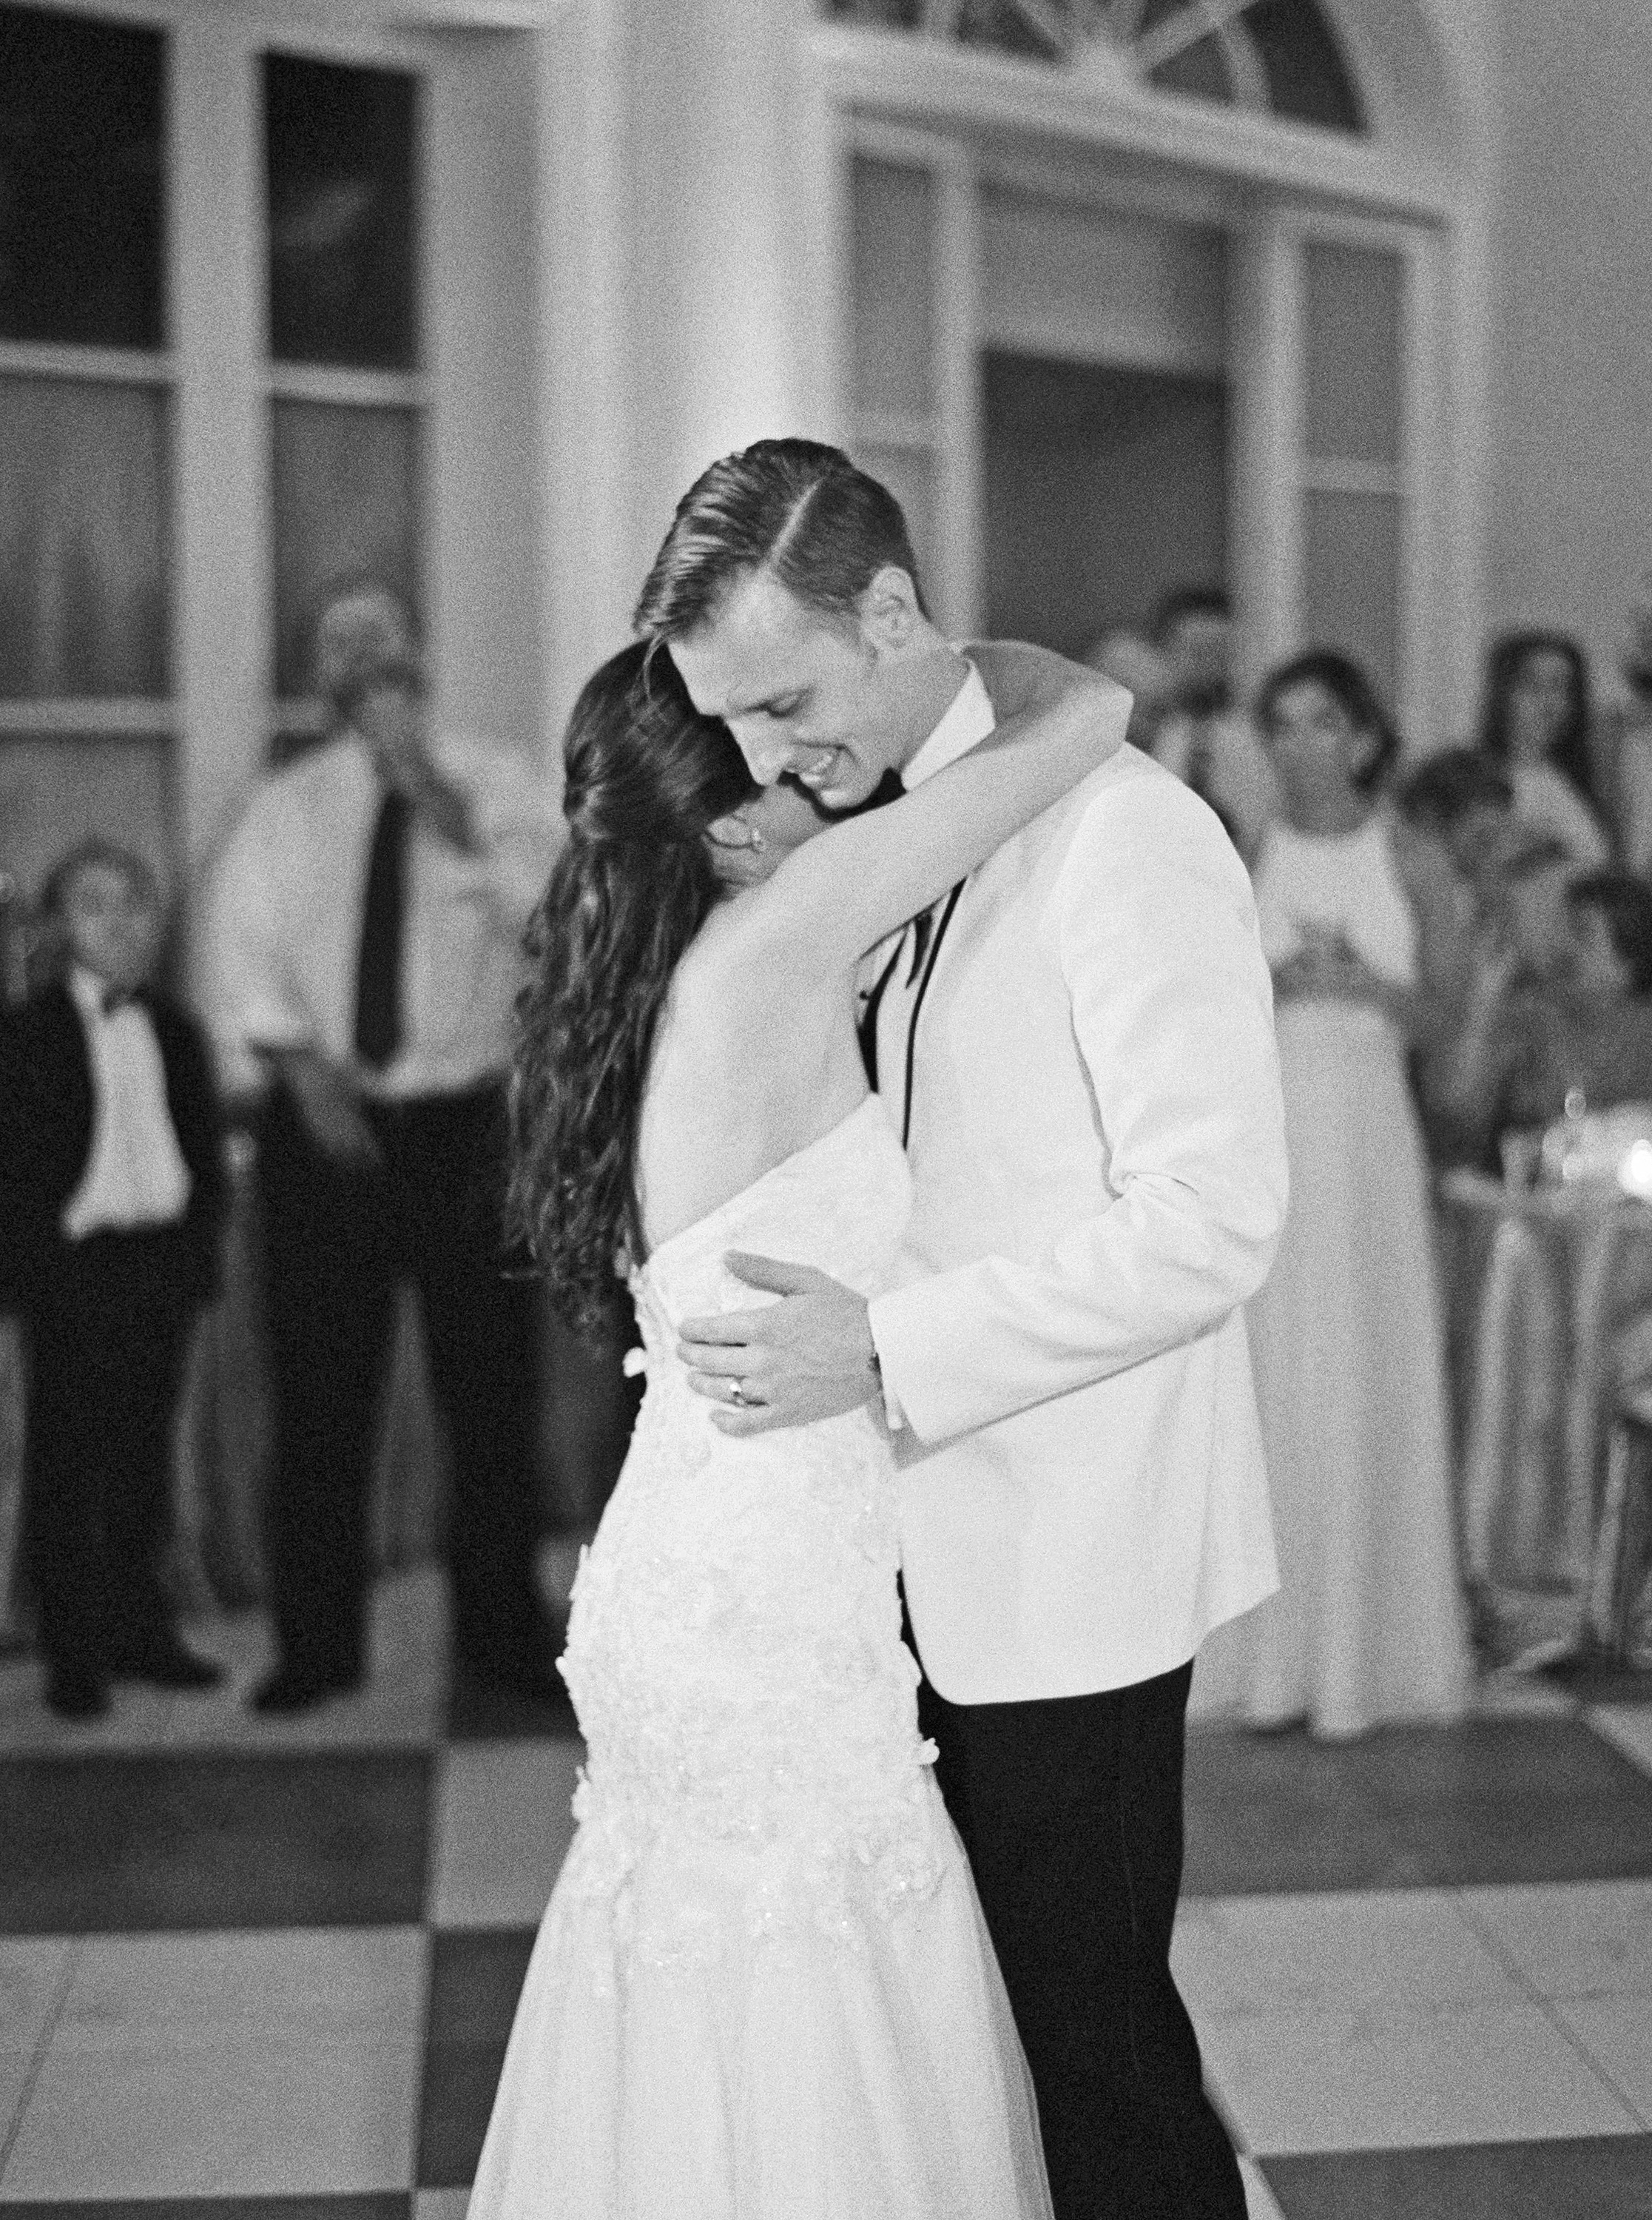 kate austin wedding firstdance bw